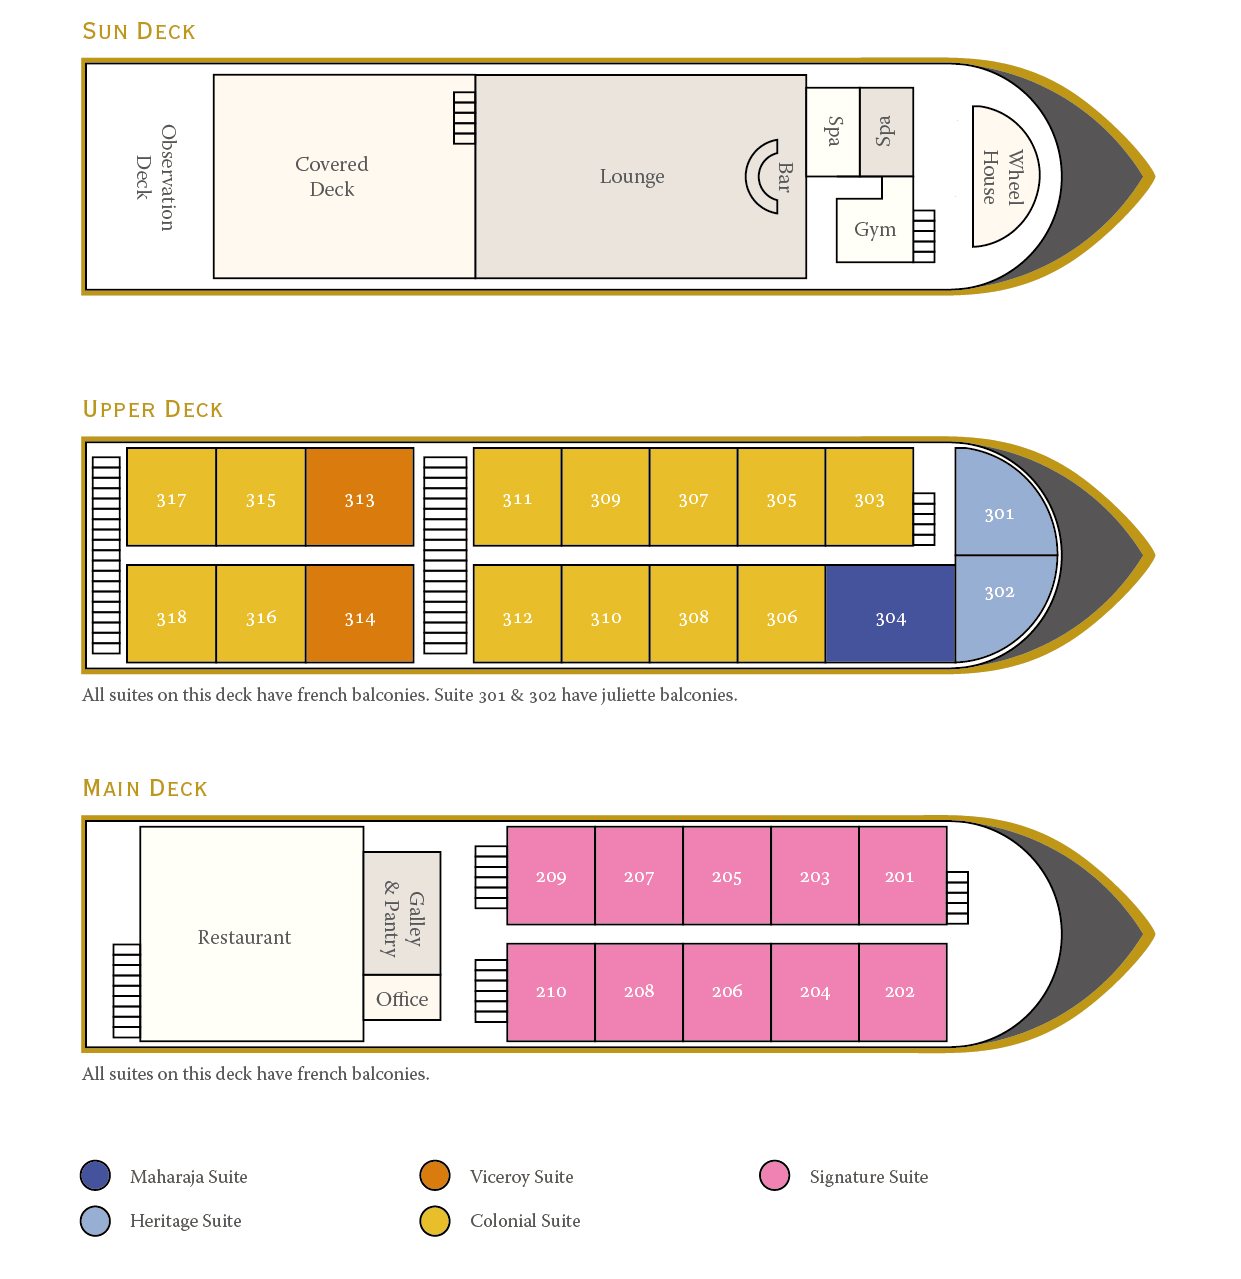 Cabin layout for Ganges Voyager I & II